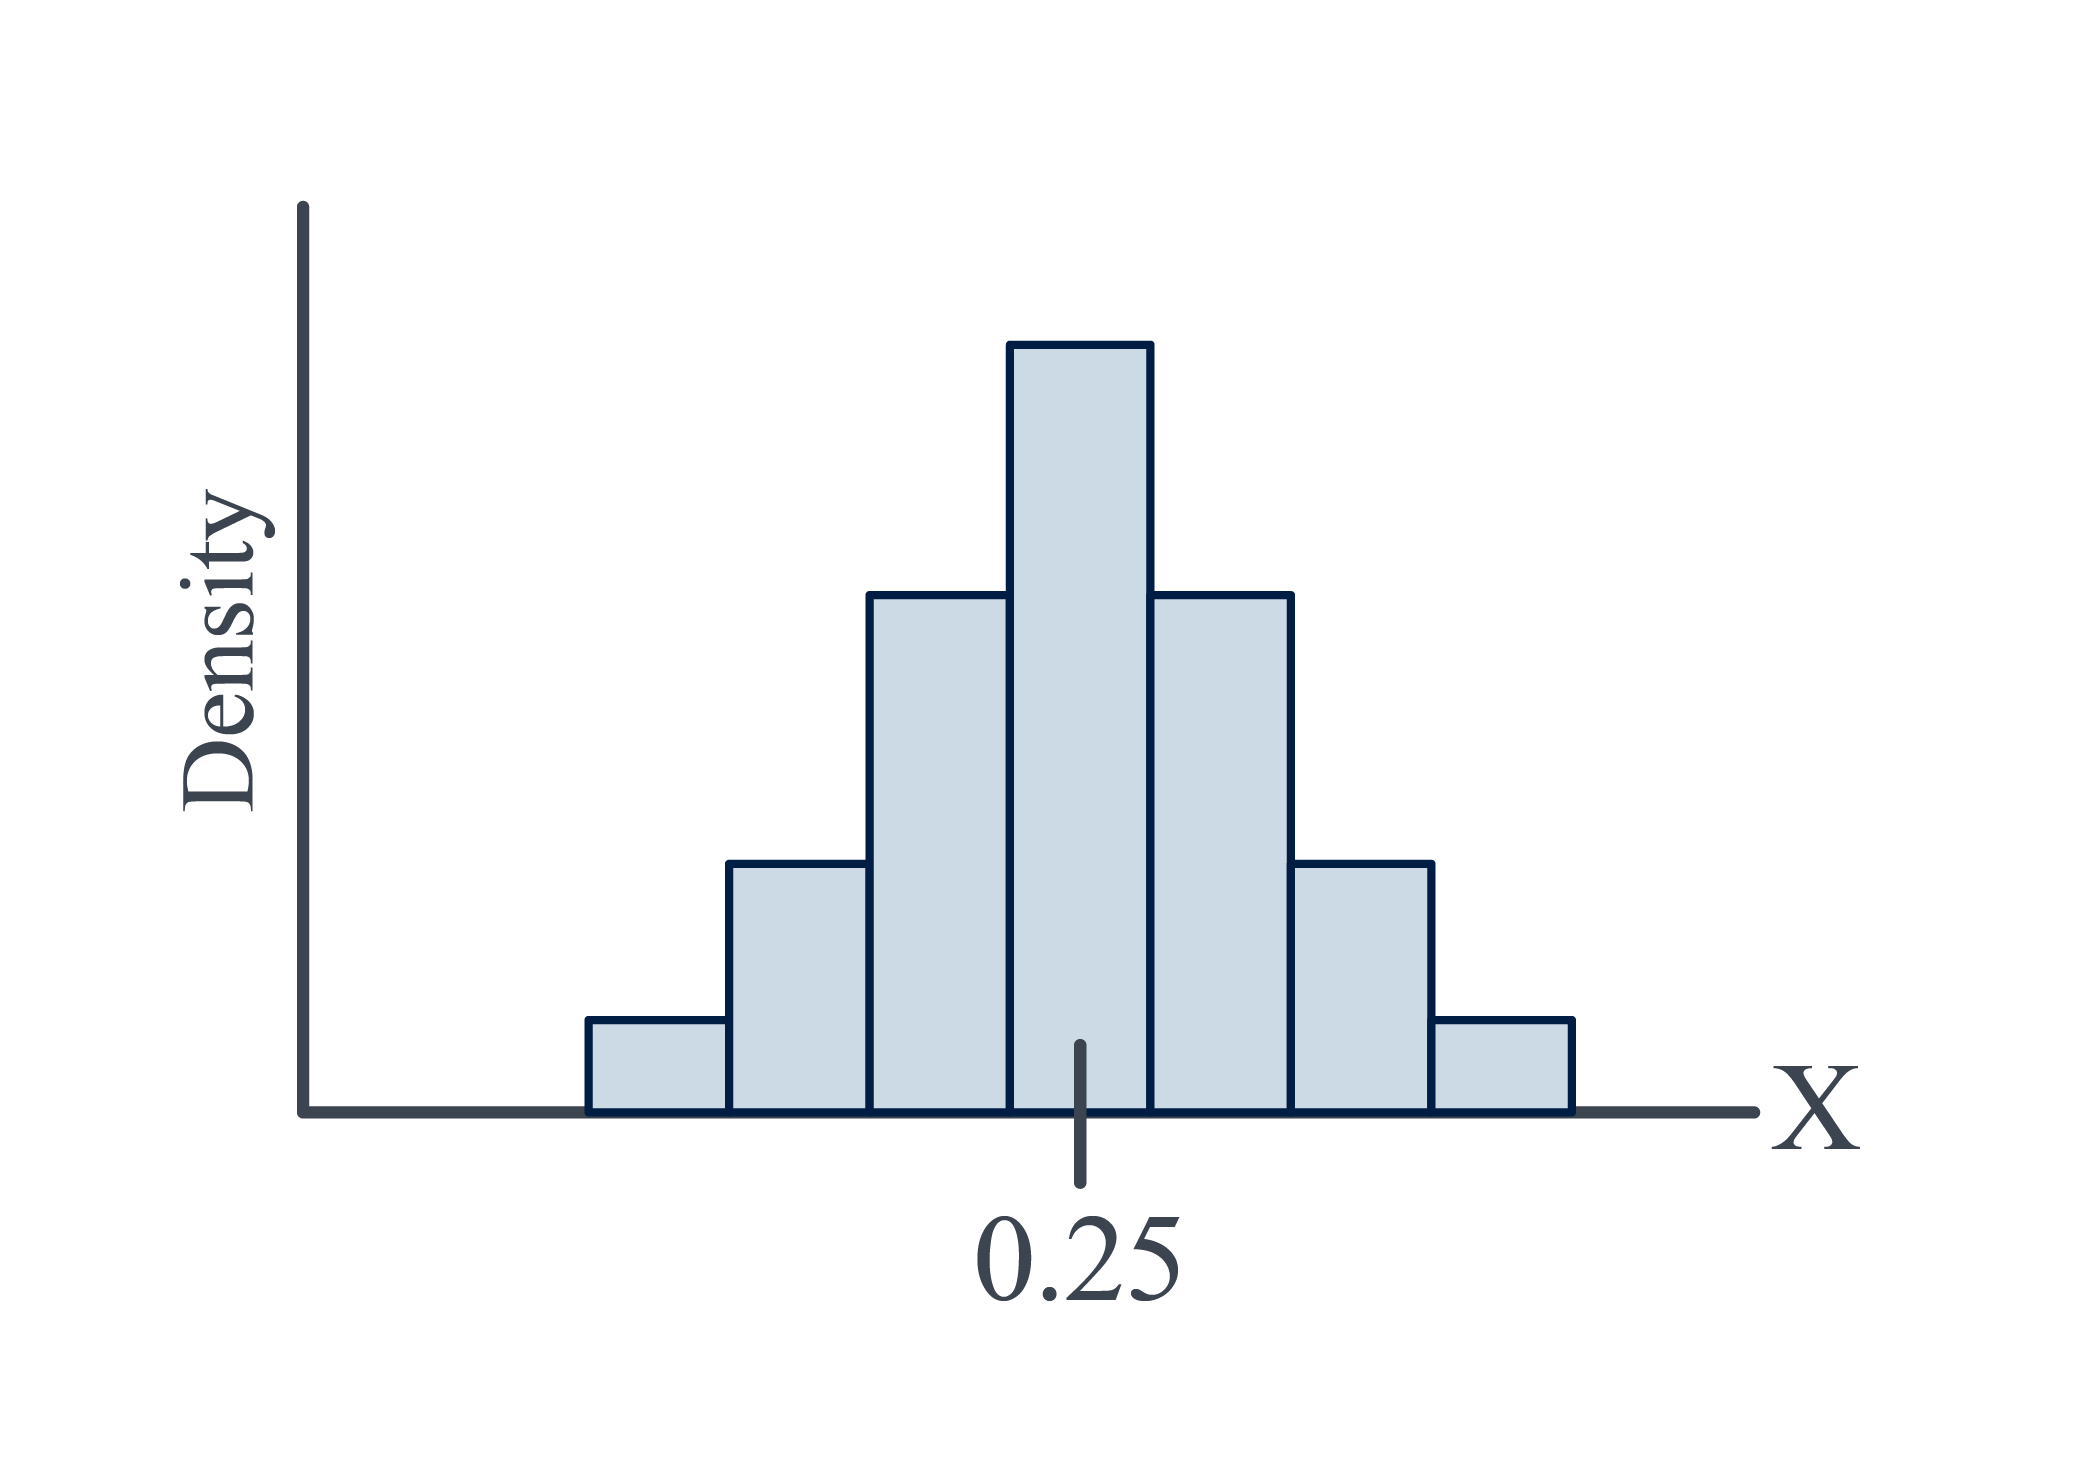 Histogram of 100 hamburger weights